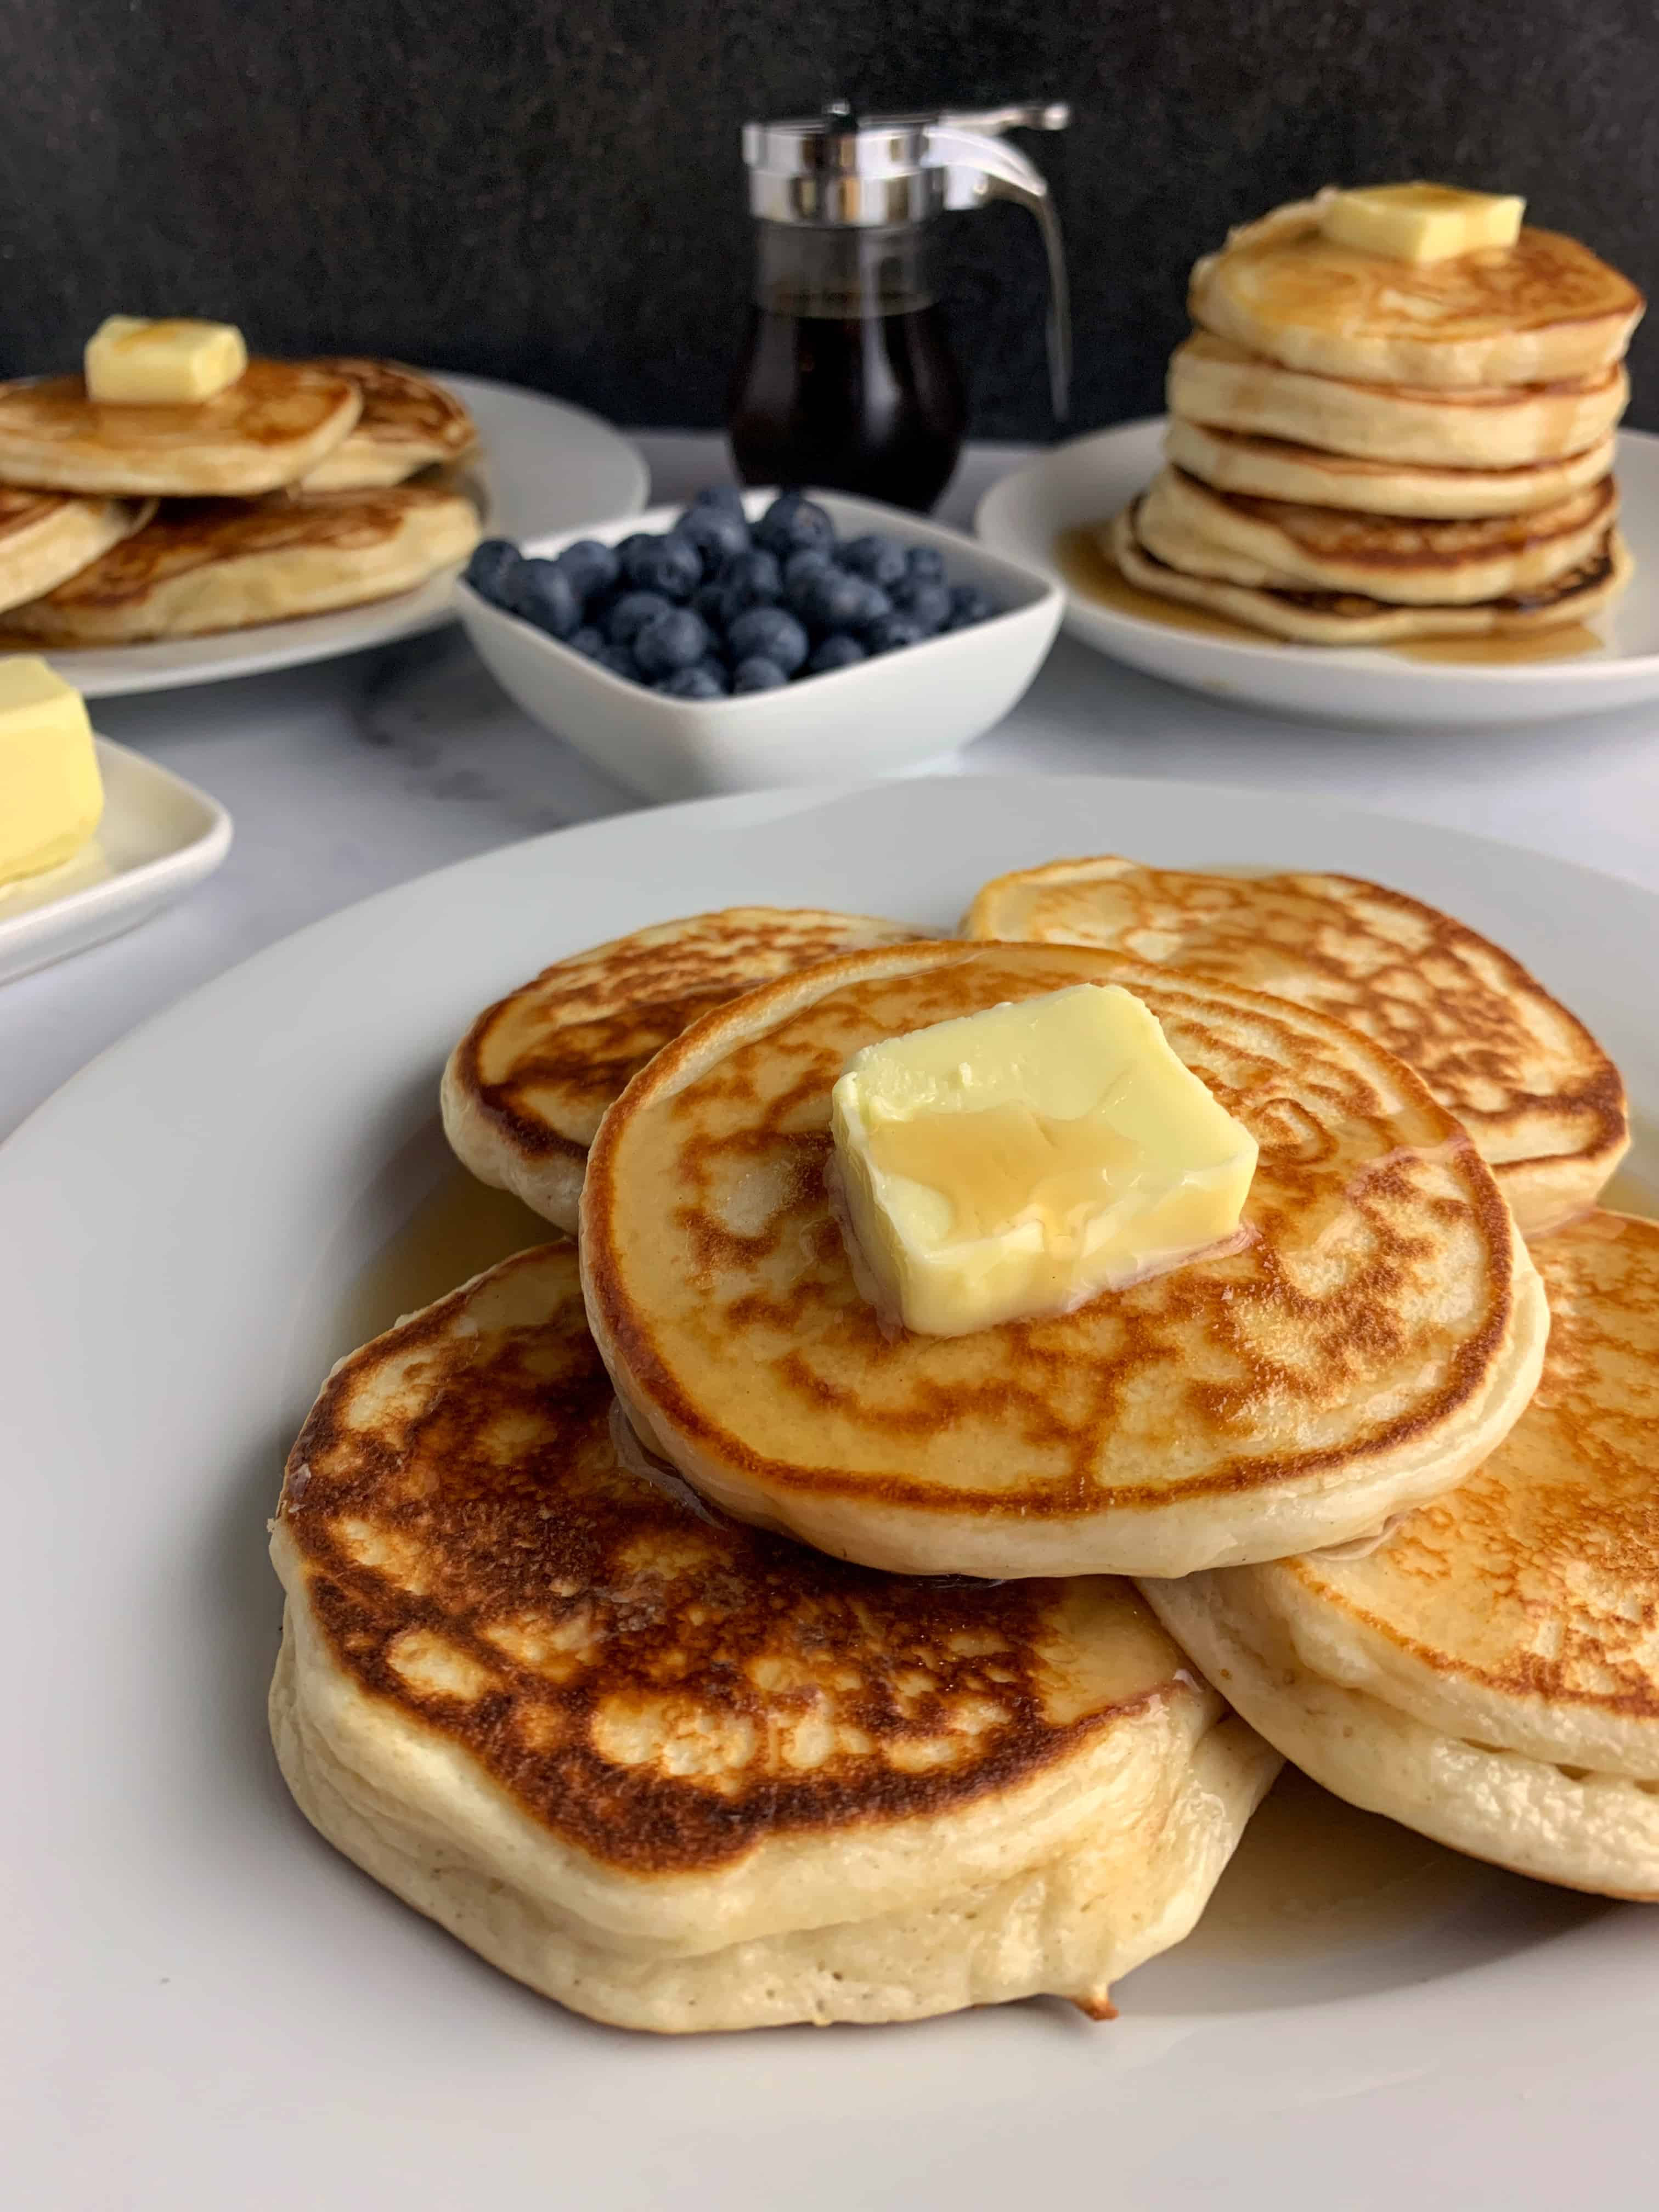 The Easiest Protein Powder Pancakes Recipe You Ll Find